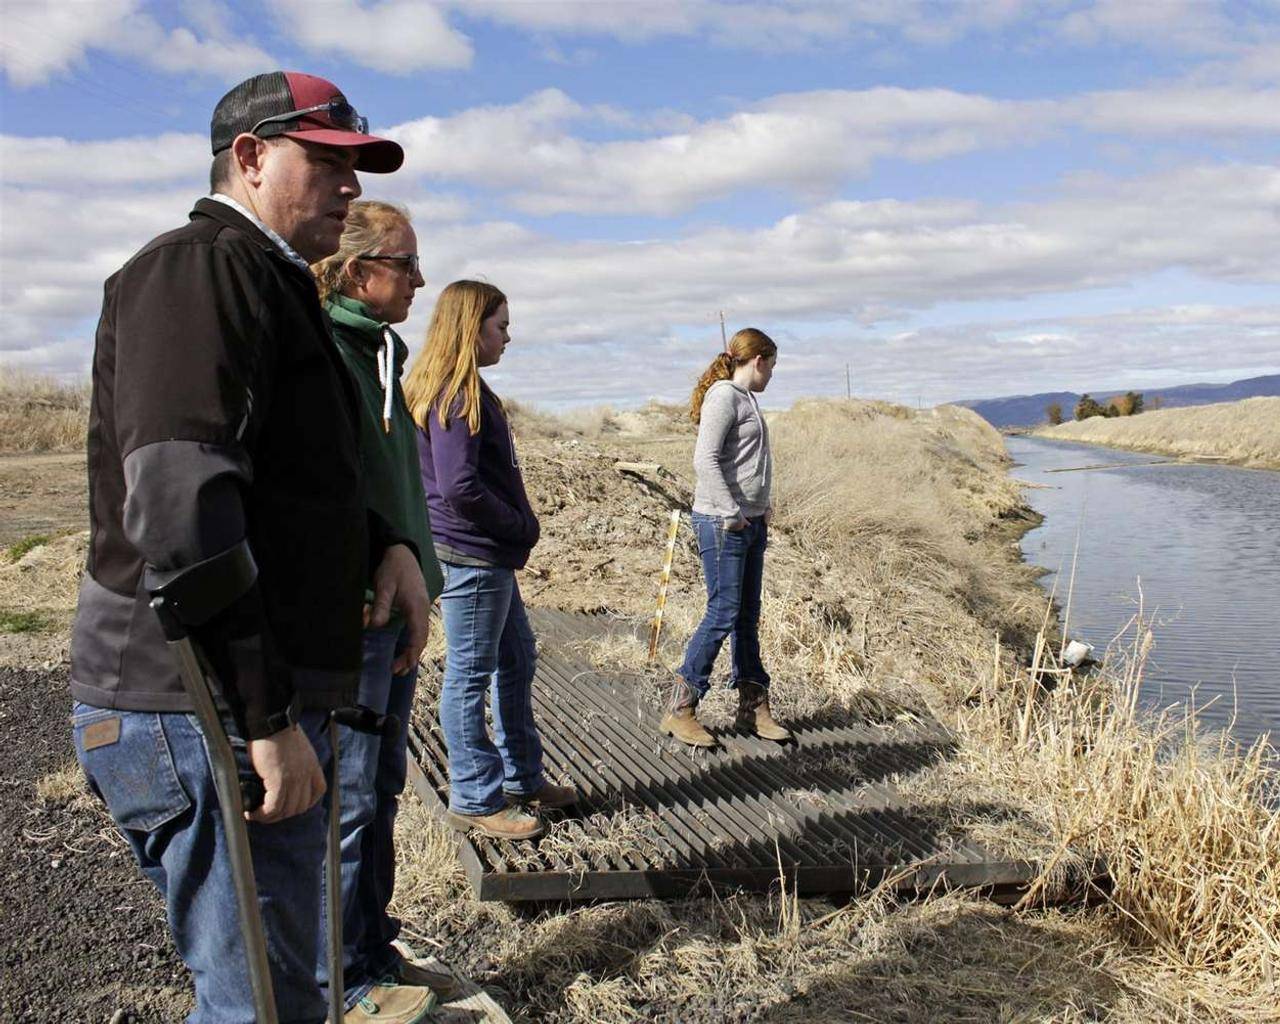 Epic drought means water crisis on Oregon-California border